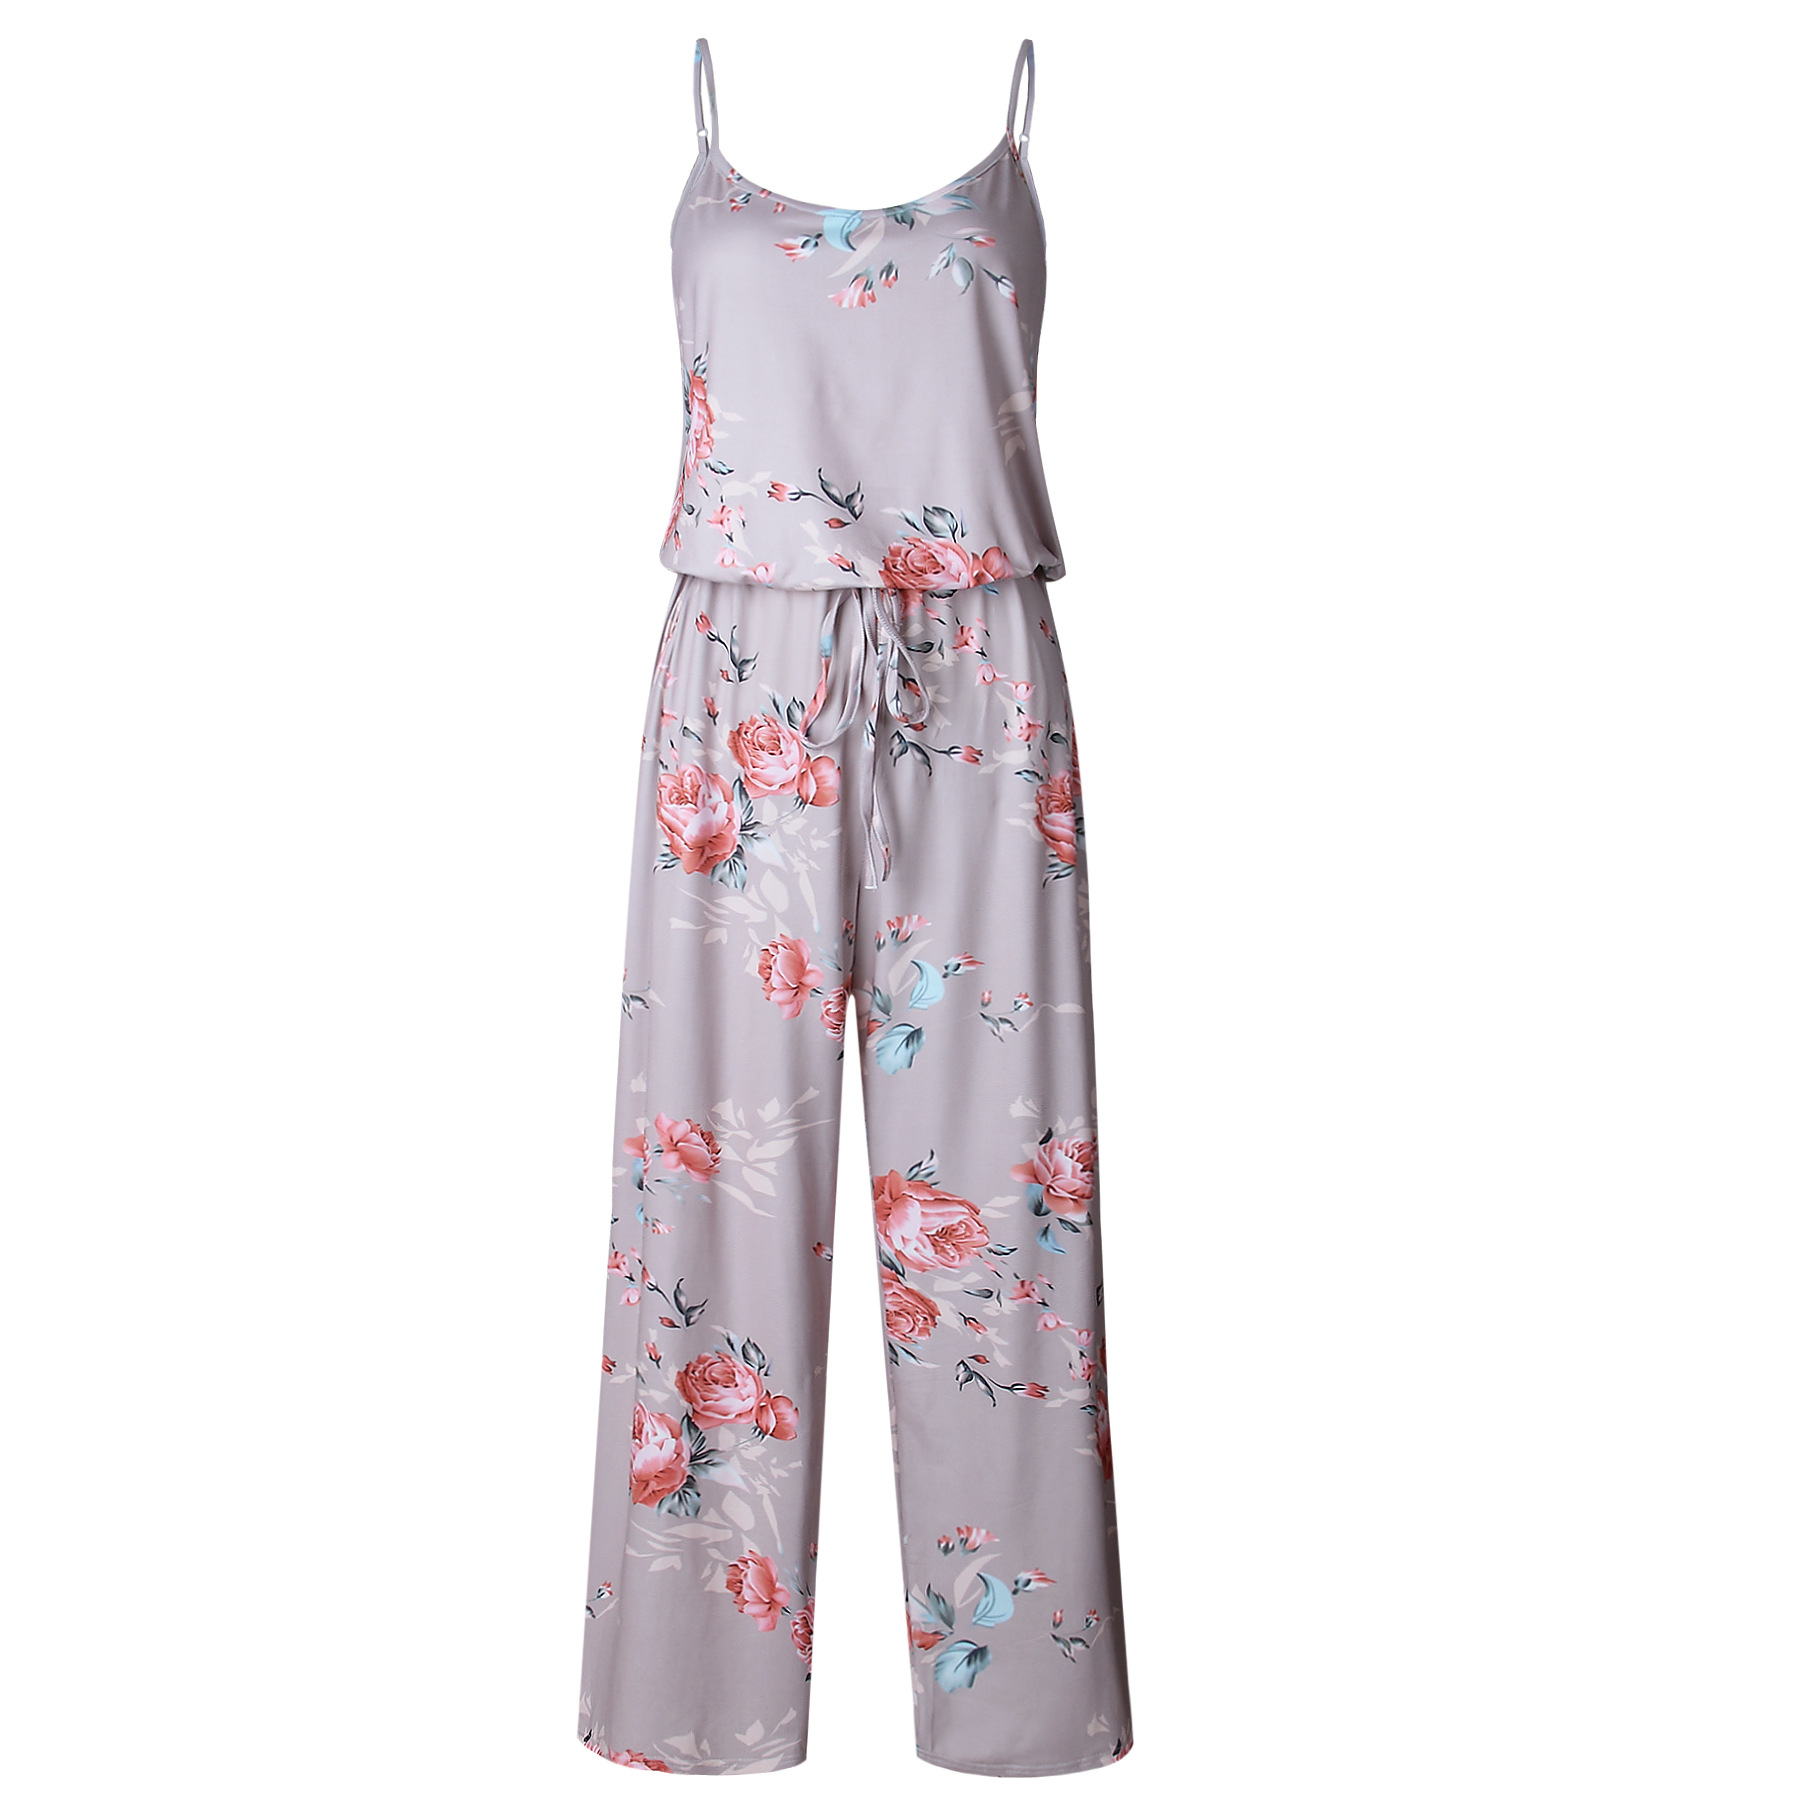 Spaghetti Strap Jumpsuit Women 2018 Summer Long Pants Floral Print Rompers Beach Casual Jumpsuits Sleeveless Sashes Playsuits 32